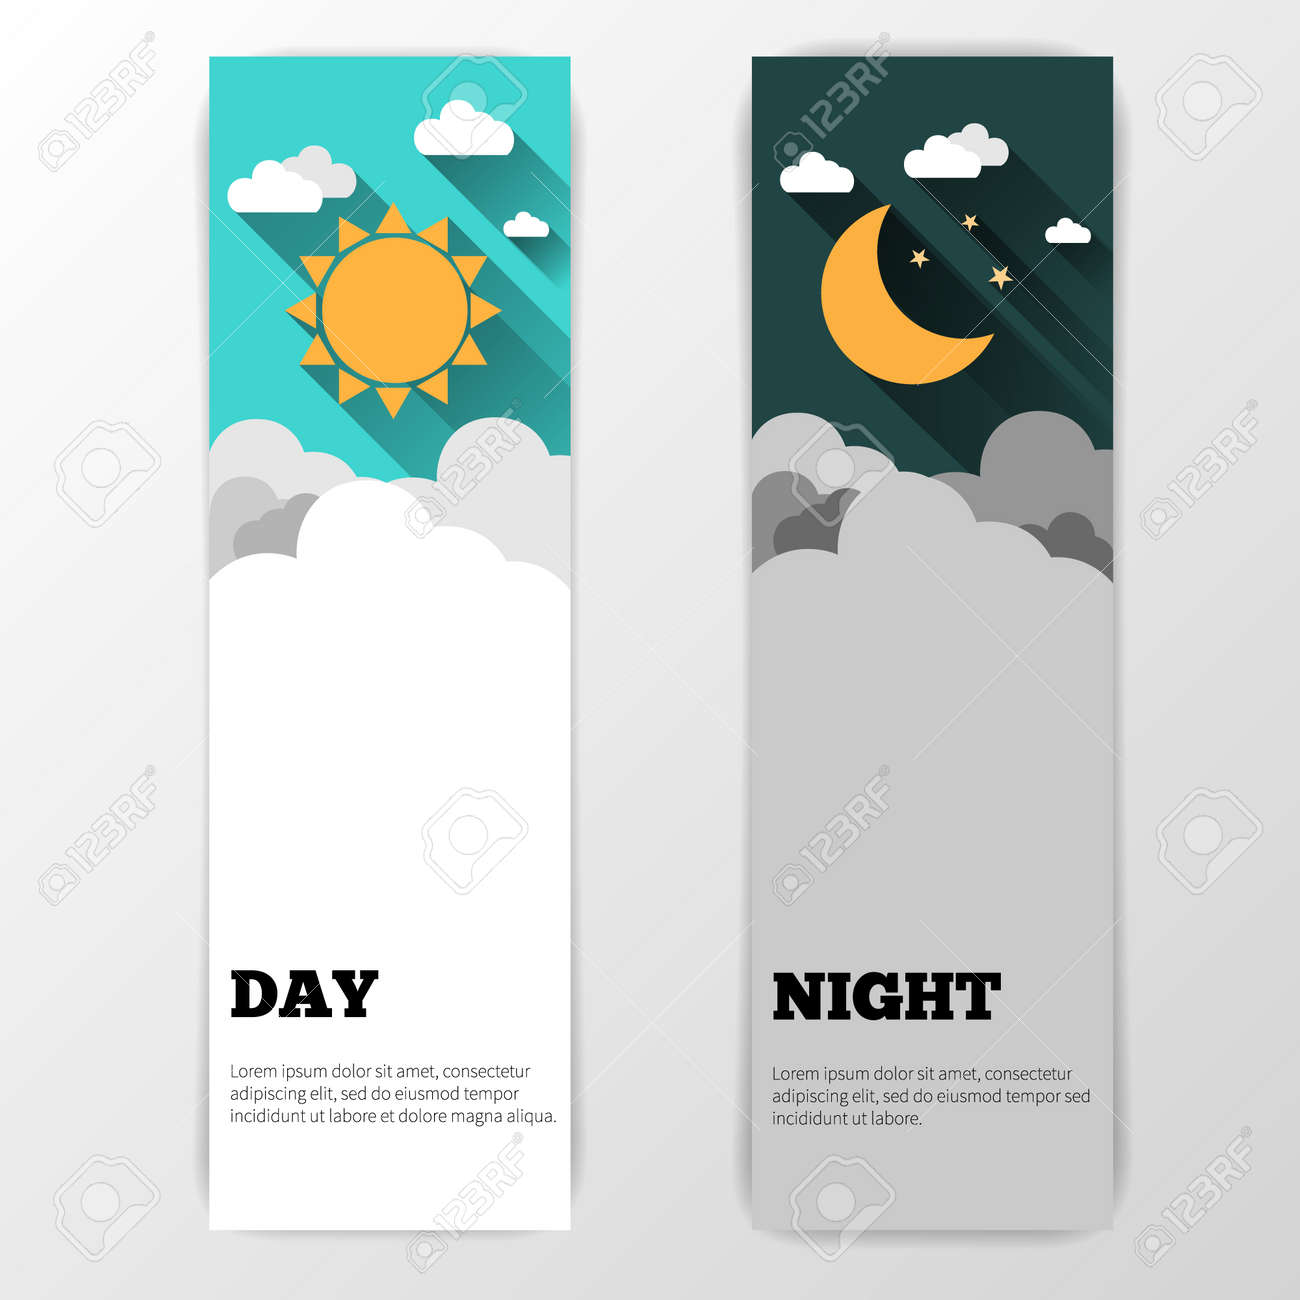 Sun, moon and stars. Day and night vector banners isolated - 38960078